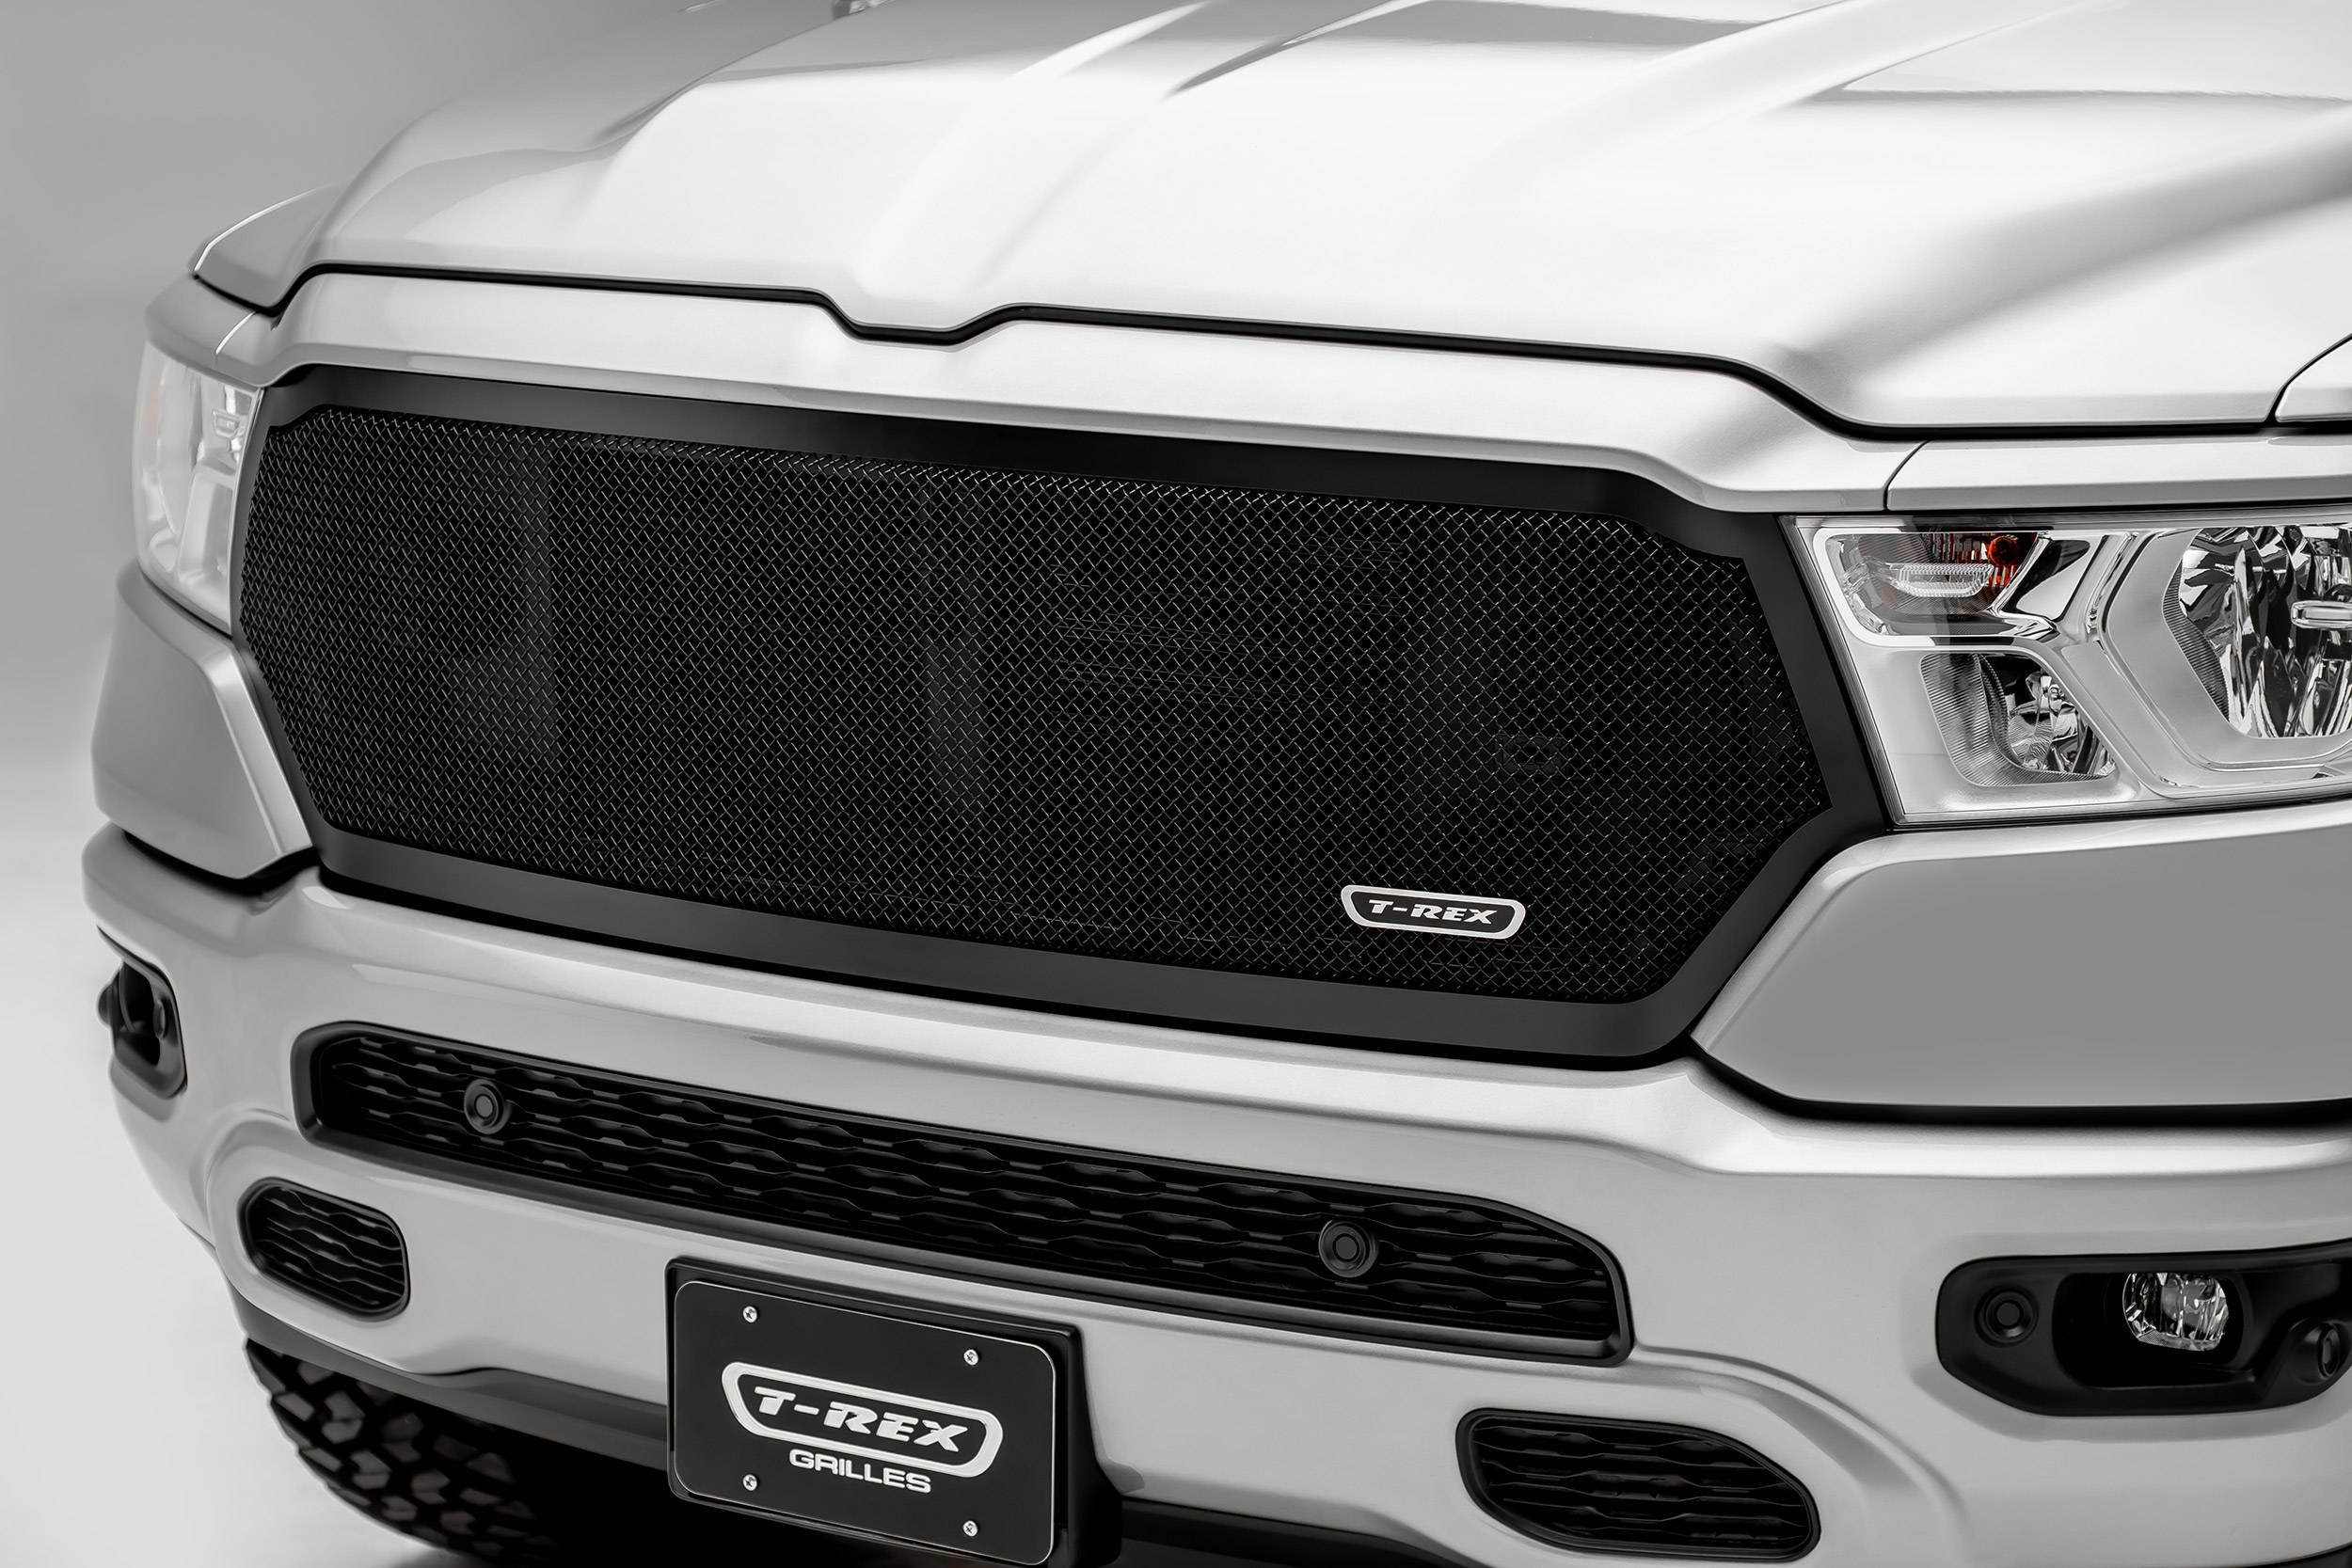 2019 2021 ram 1500 laramie lone star big horn tradesman upper class grille black 1 pc replacement pn 51465 2019 2021 ram 1500 laramie lone star big horn tradesman upper class grille black 1 pc replacement pn 51465